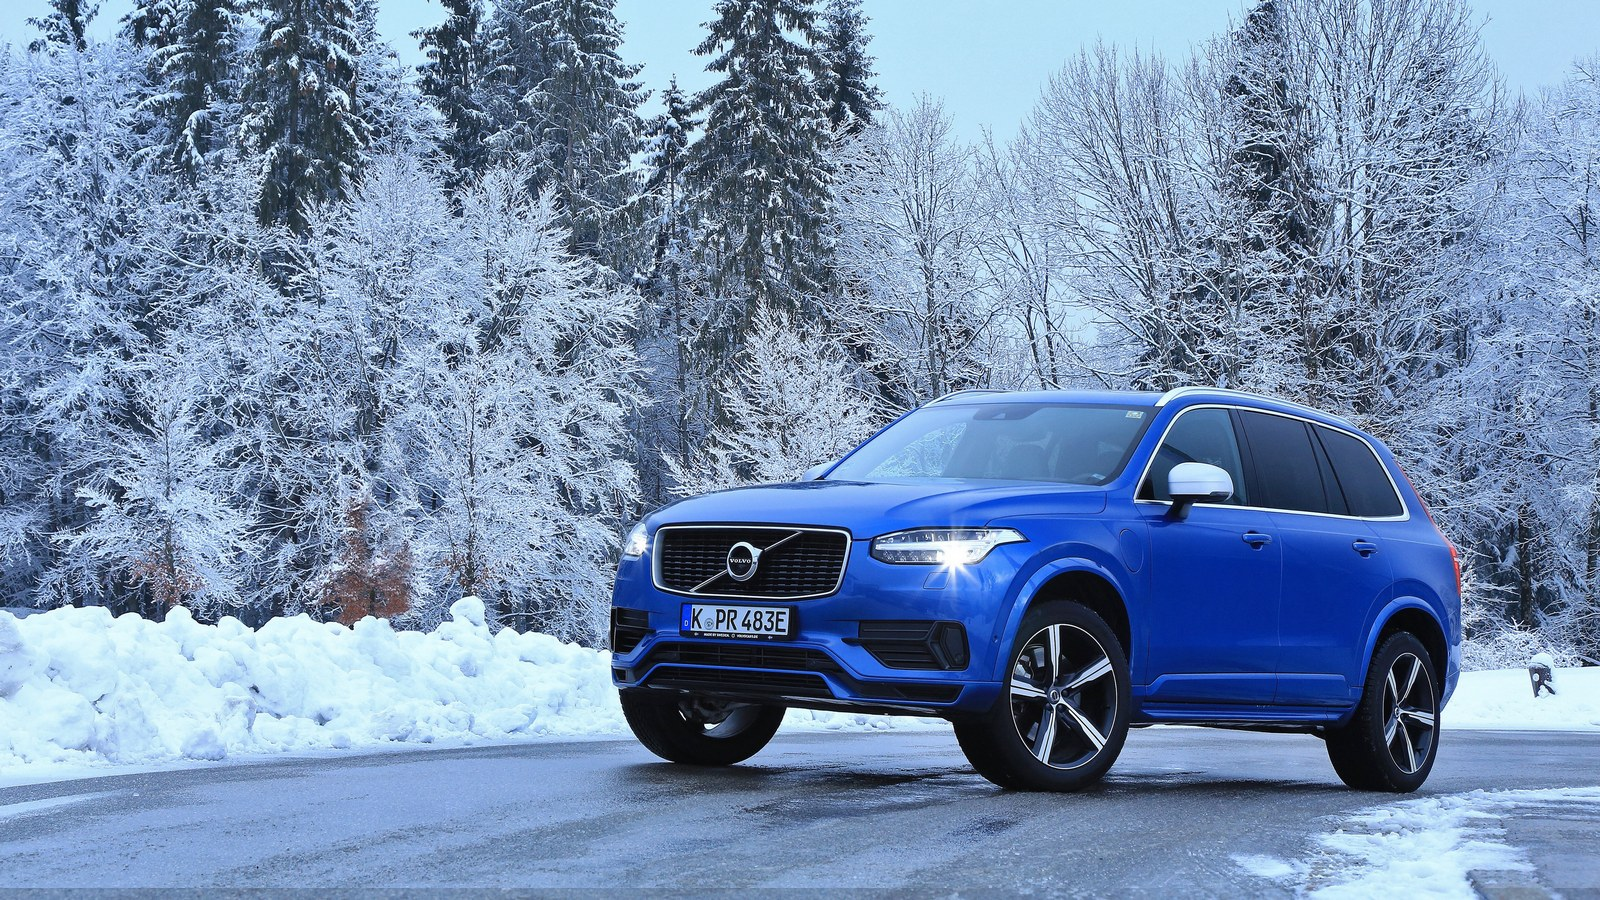 New Volvo XC90 coming in 2021 - Car news | CarsBase.com